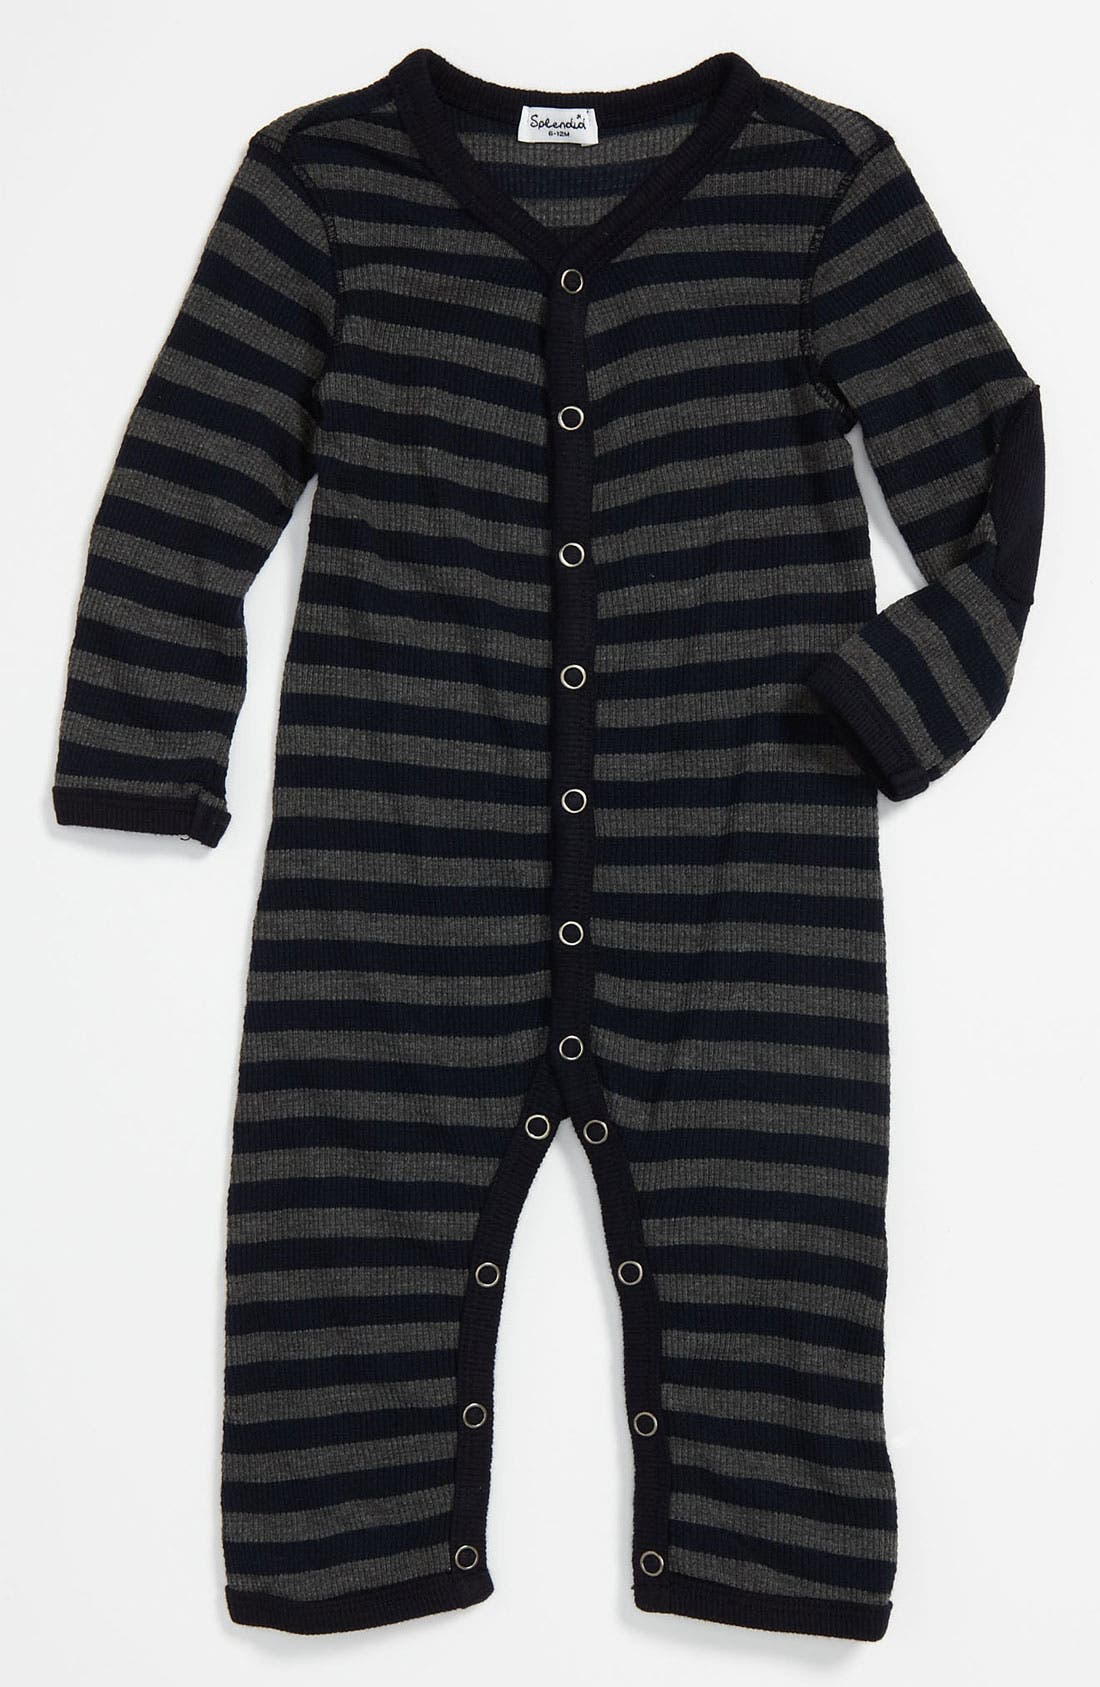 Alternate Image 1 Selected - Splendid Stripe Thermal Knit Romper (Infant)